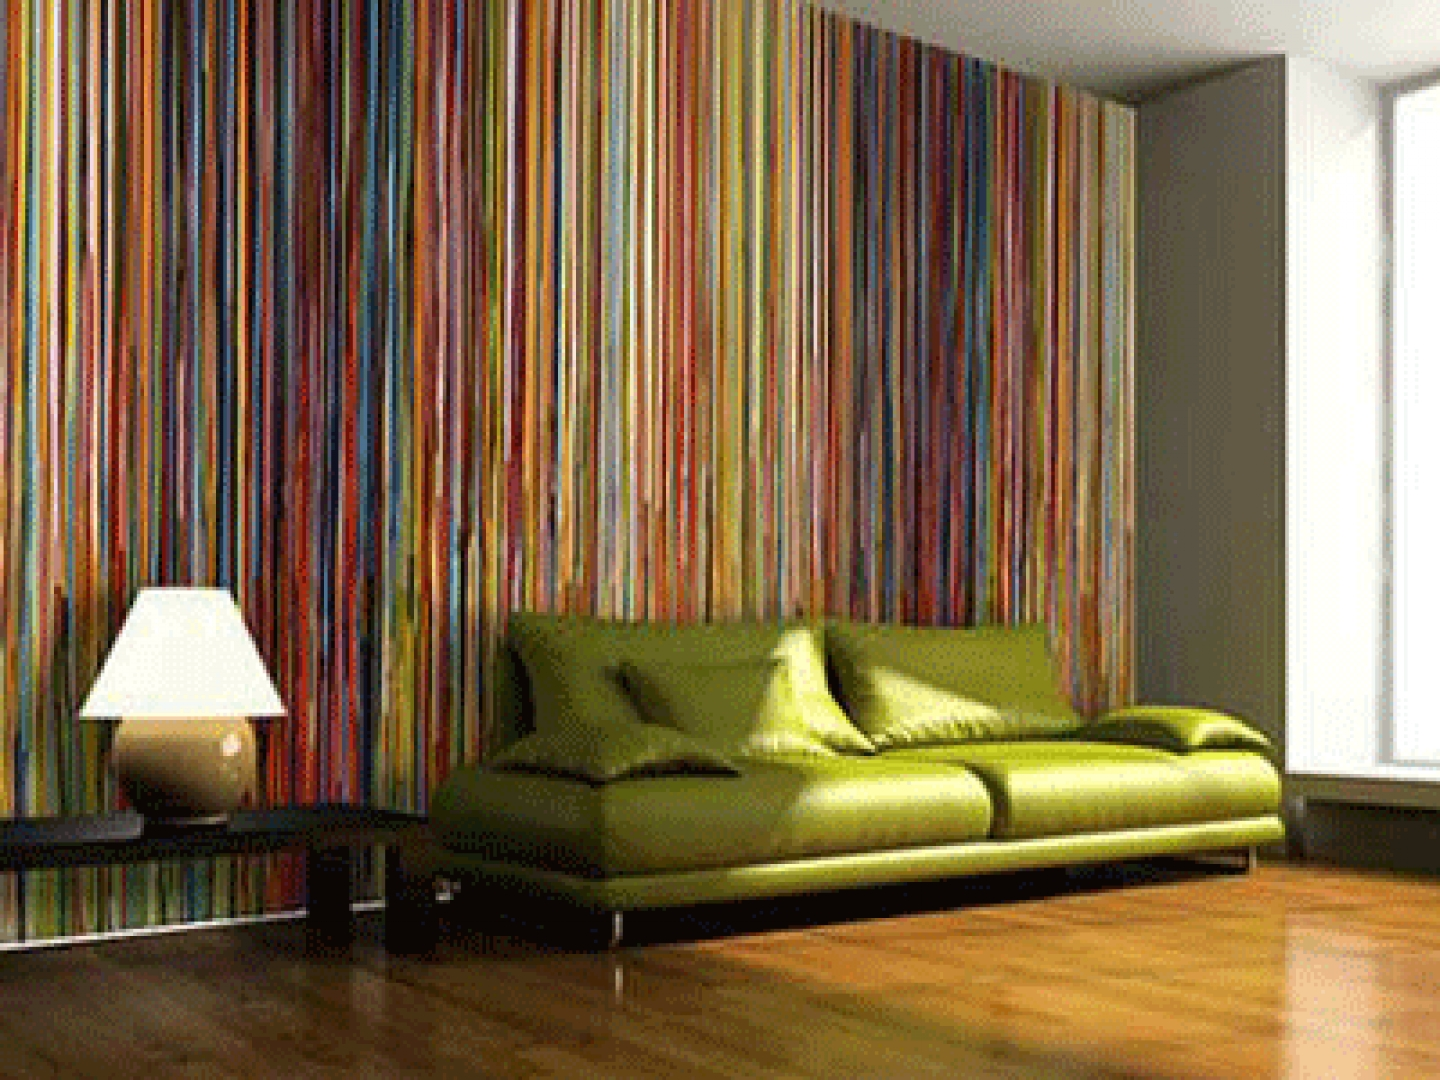 30 modern home decor ideas - Wall wallpaper designs ...